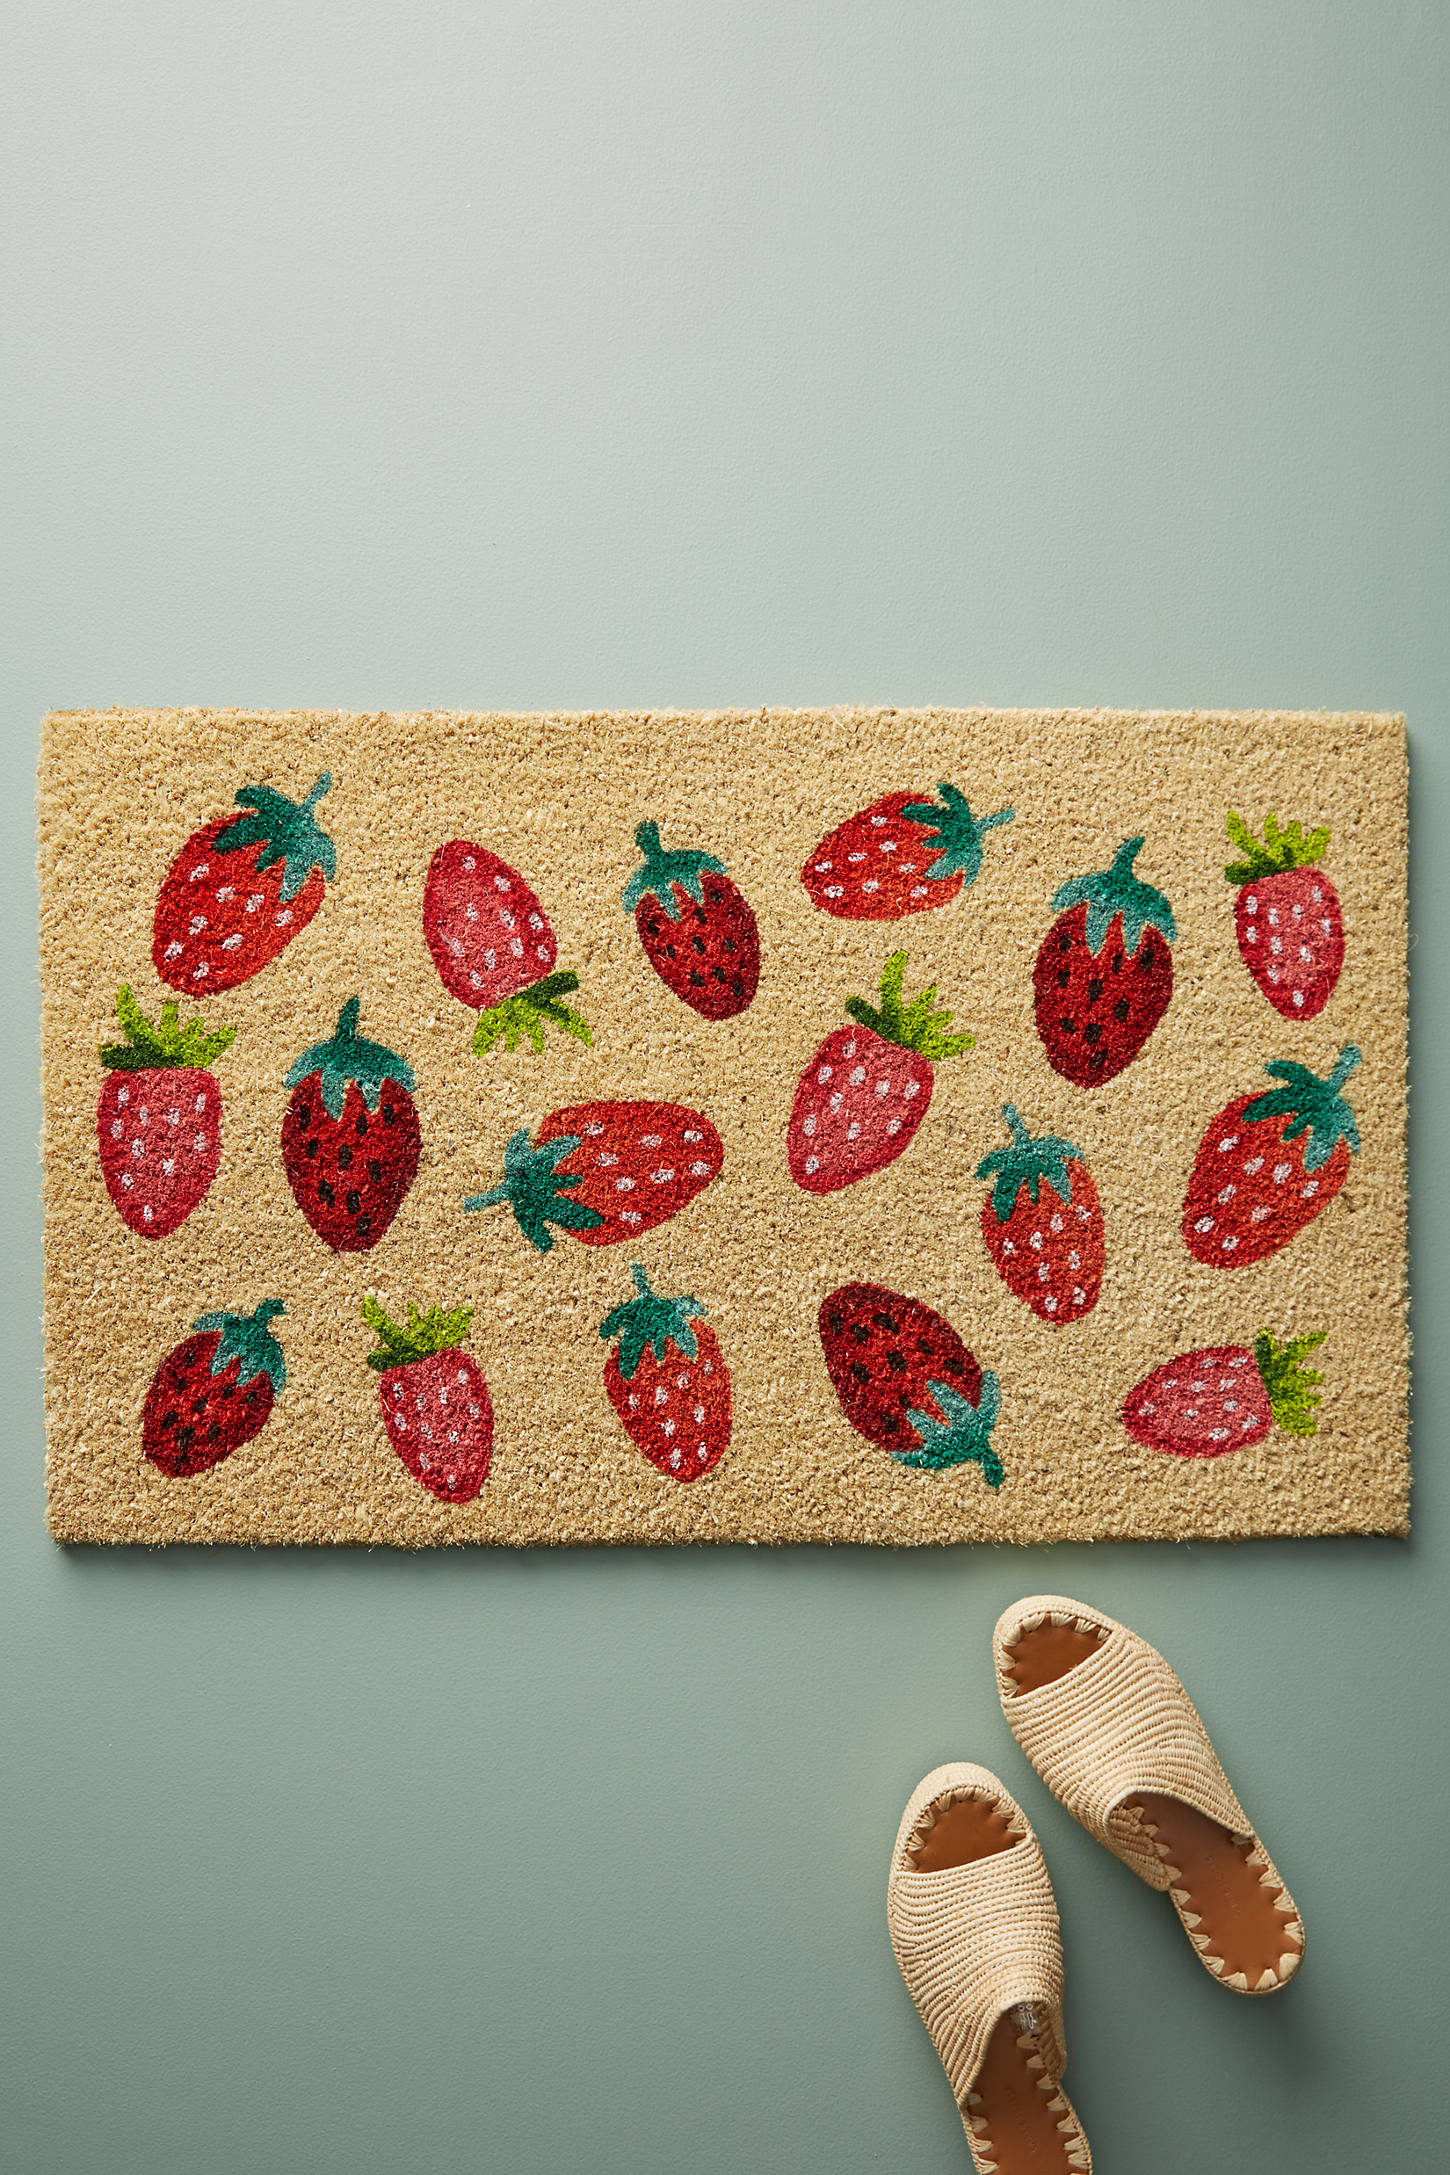 Strawberries Doormat